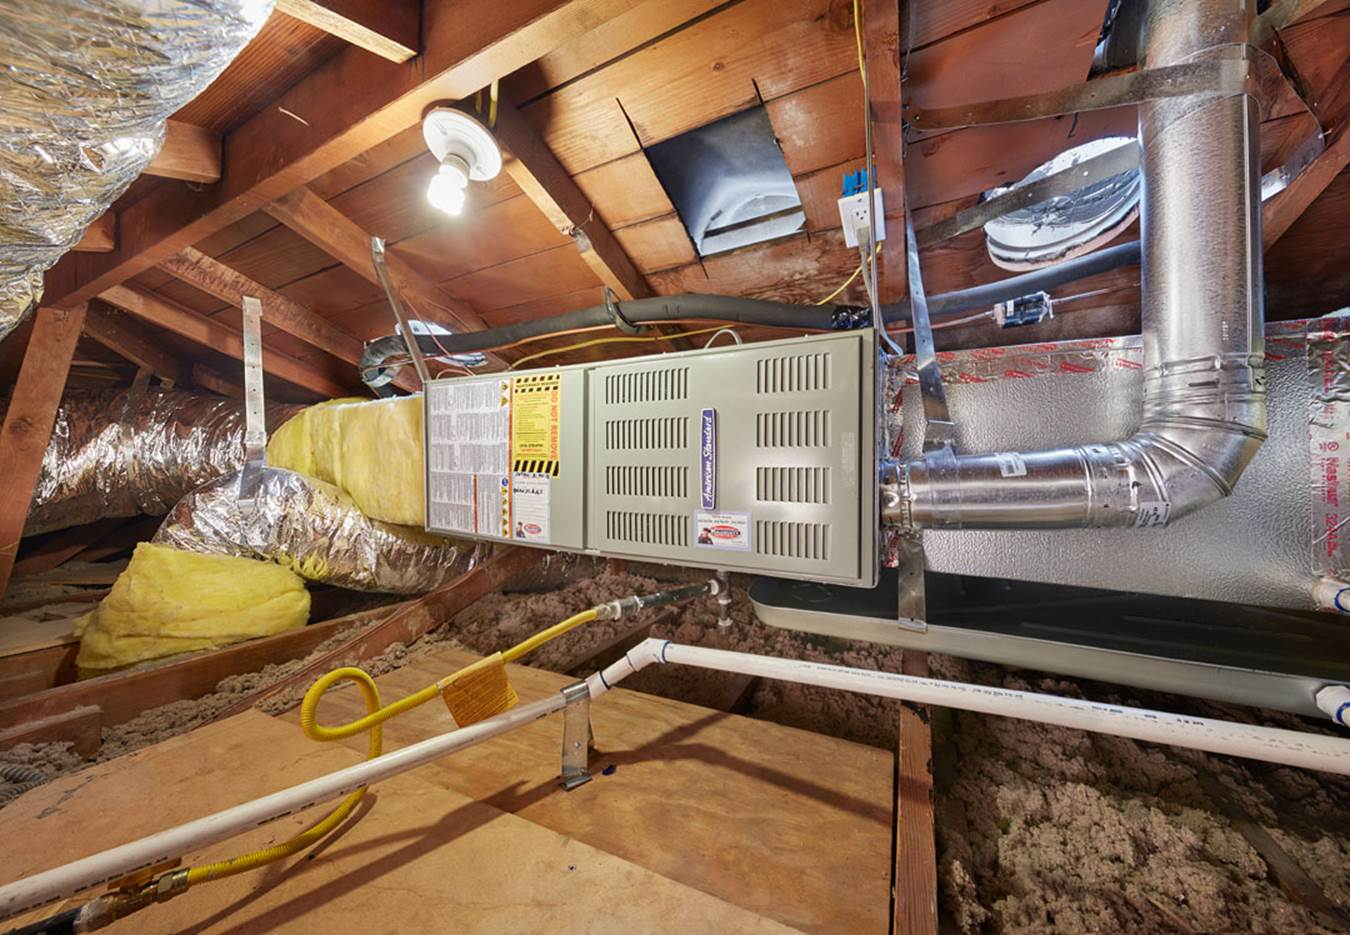 Moving A Furnace To The Attic Some Things To Consider Kilowatt throughout sizing 1350 X 935